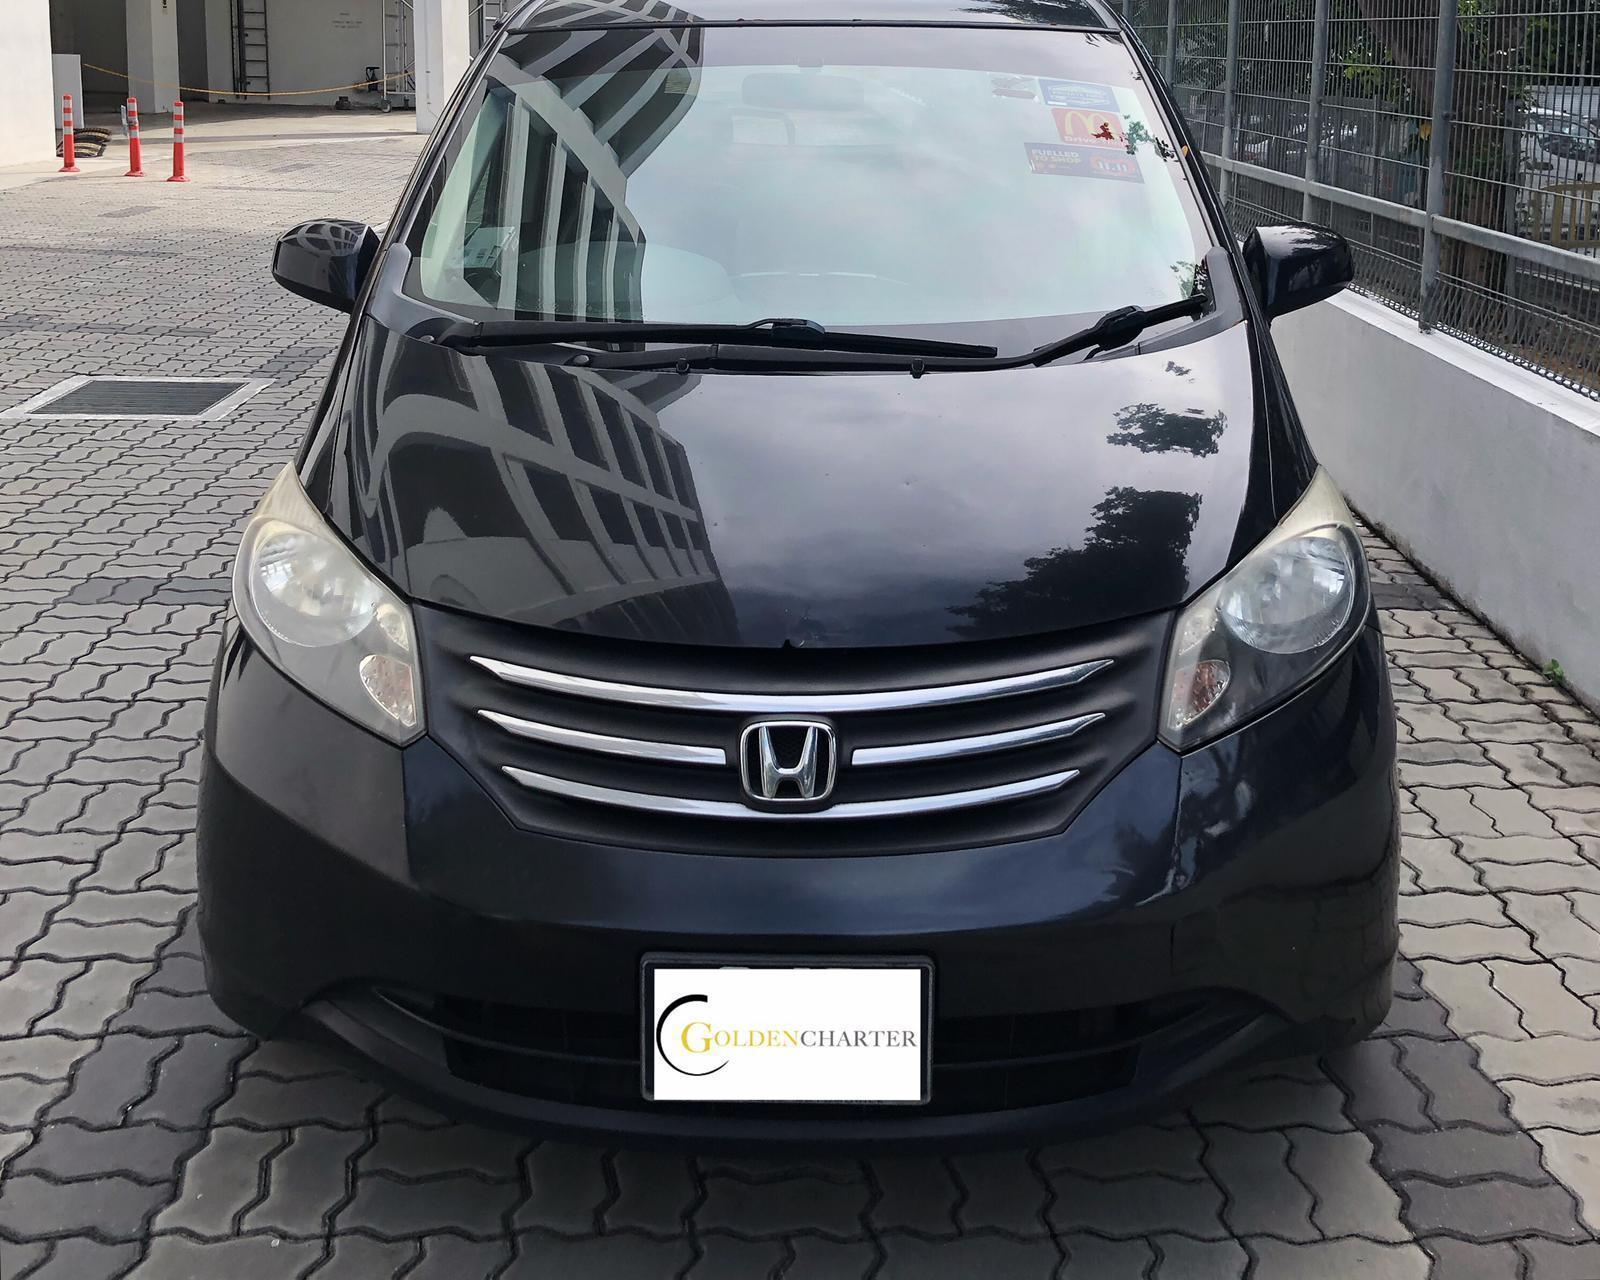 Honda Freed for rent Grab Rental Gojek Or Personal Use low price and CHEAPEST RENTAL